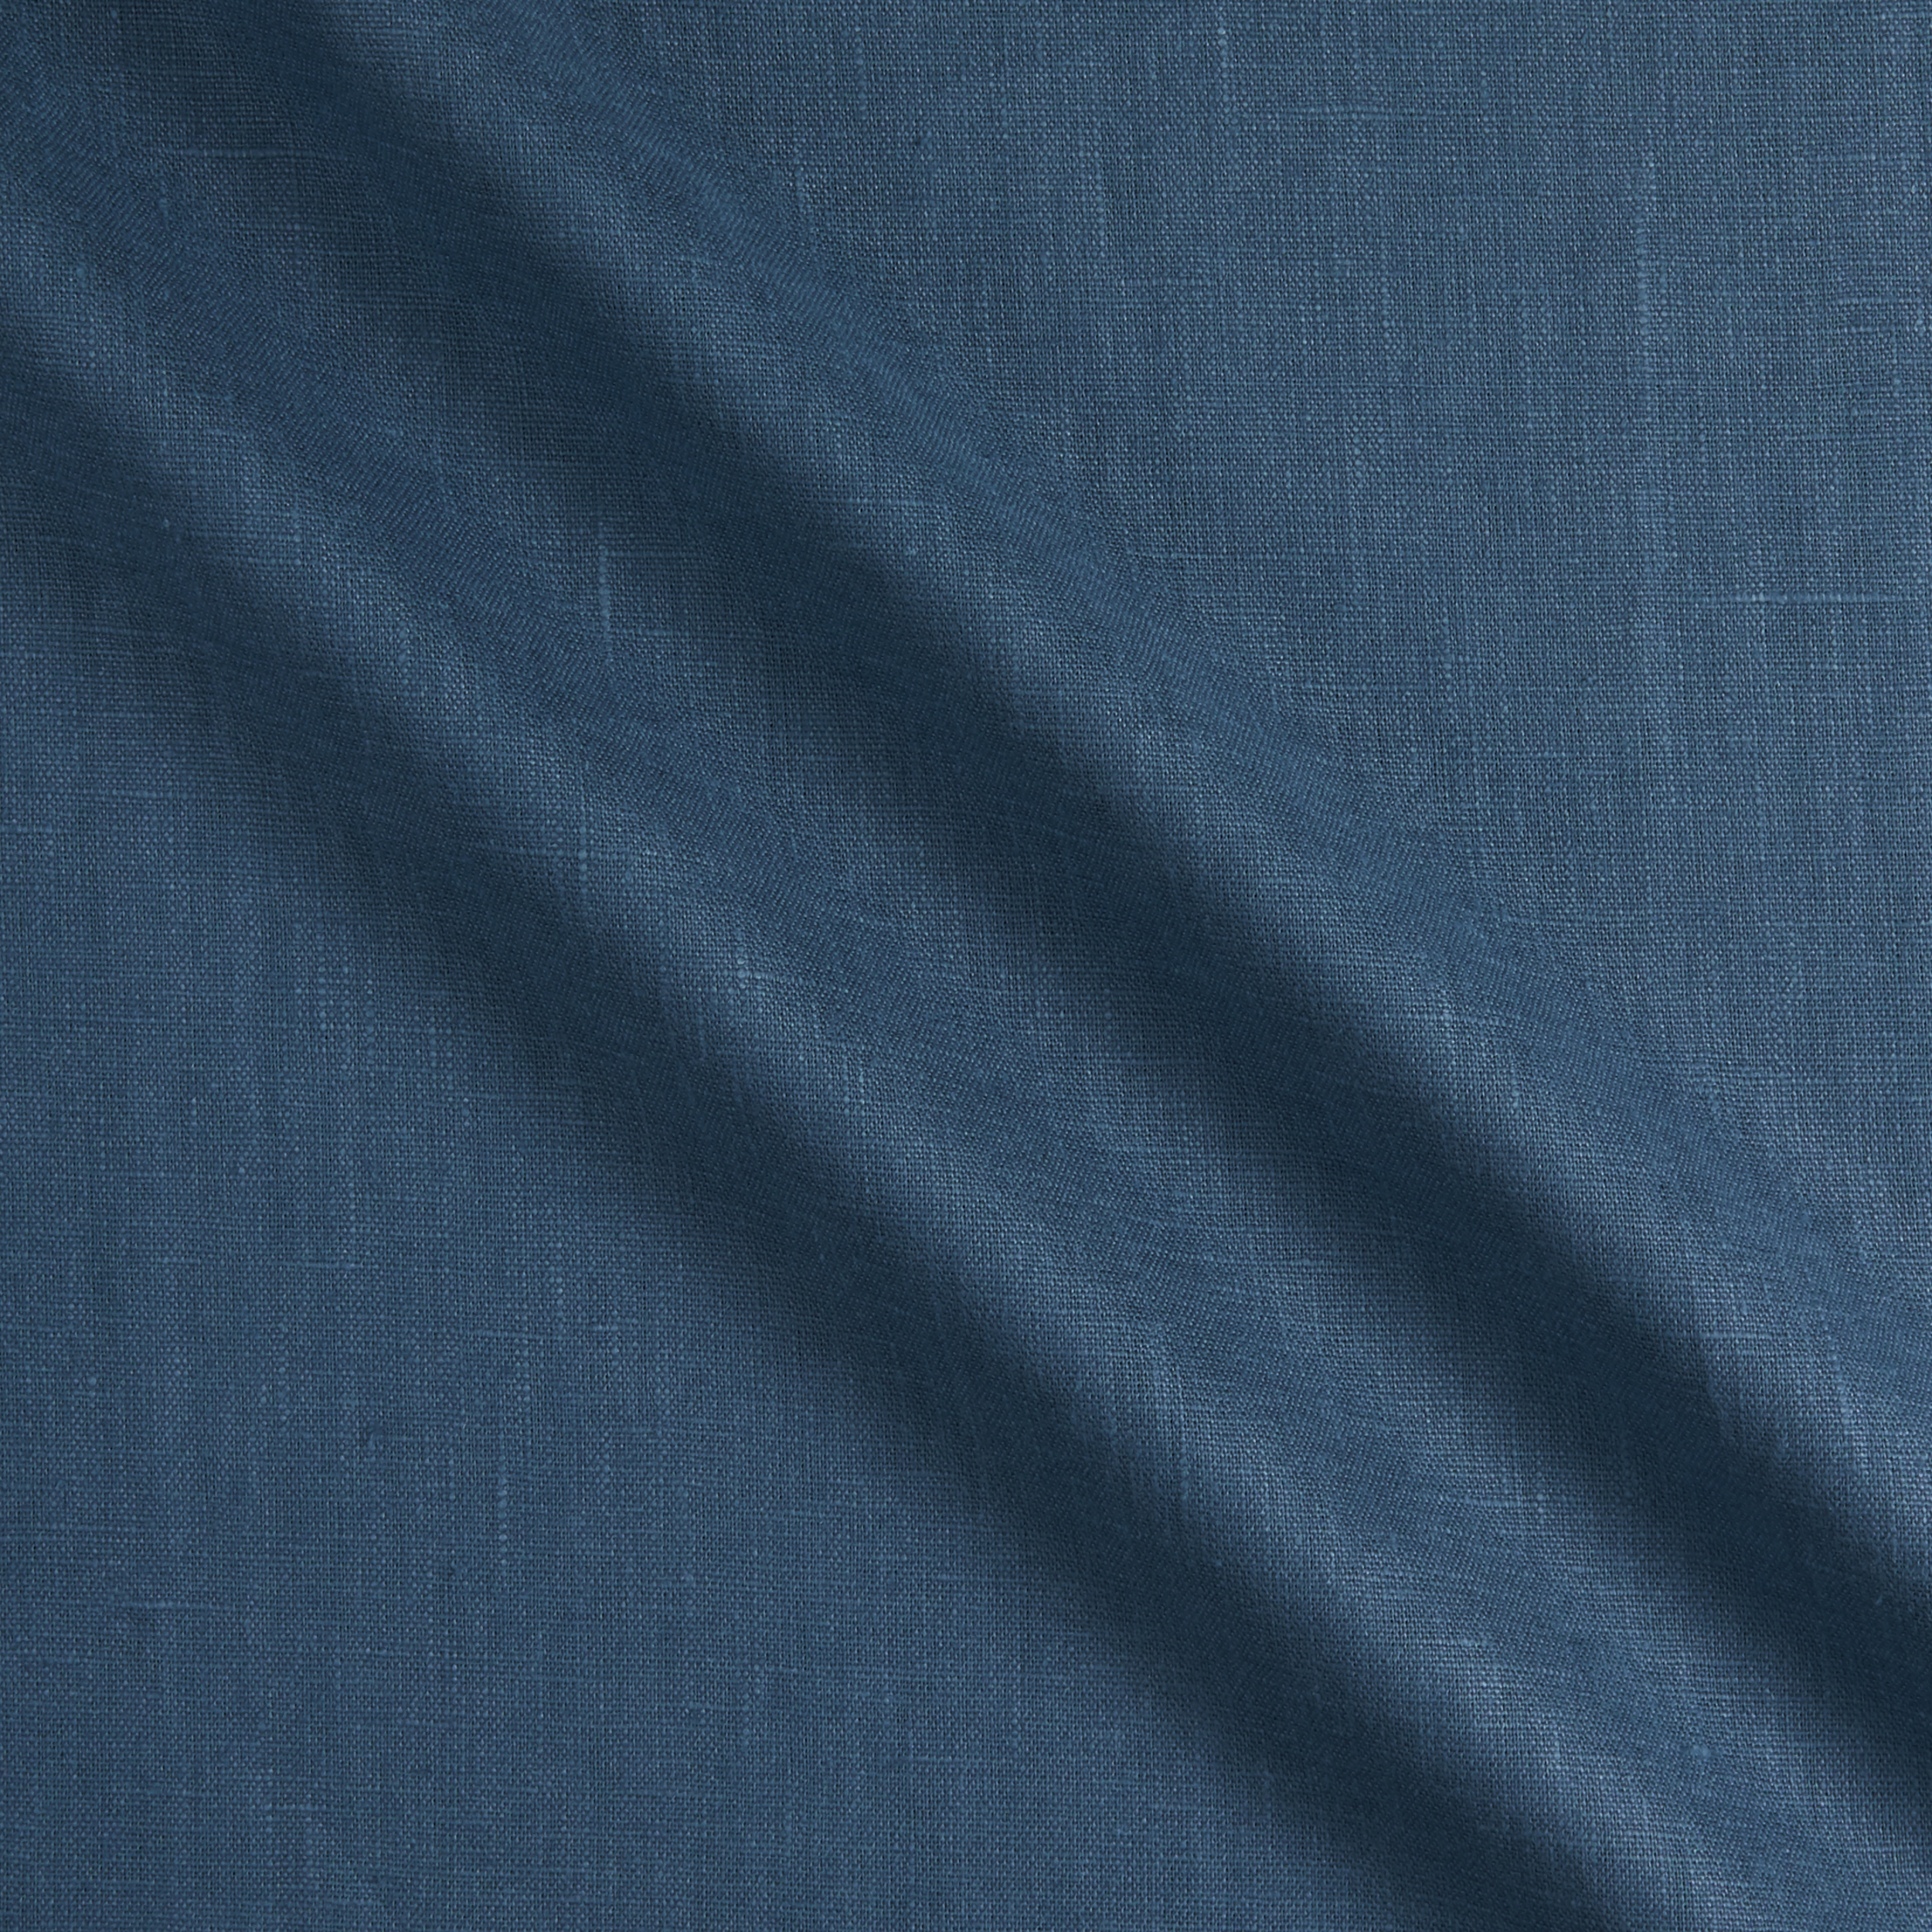 European 100% Washed Linen Wedgewood Fabric by Noveltex in USA